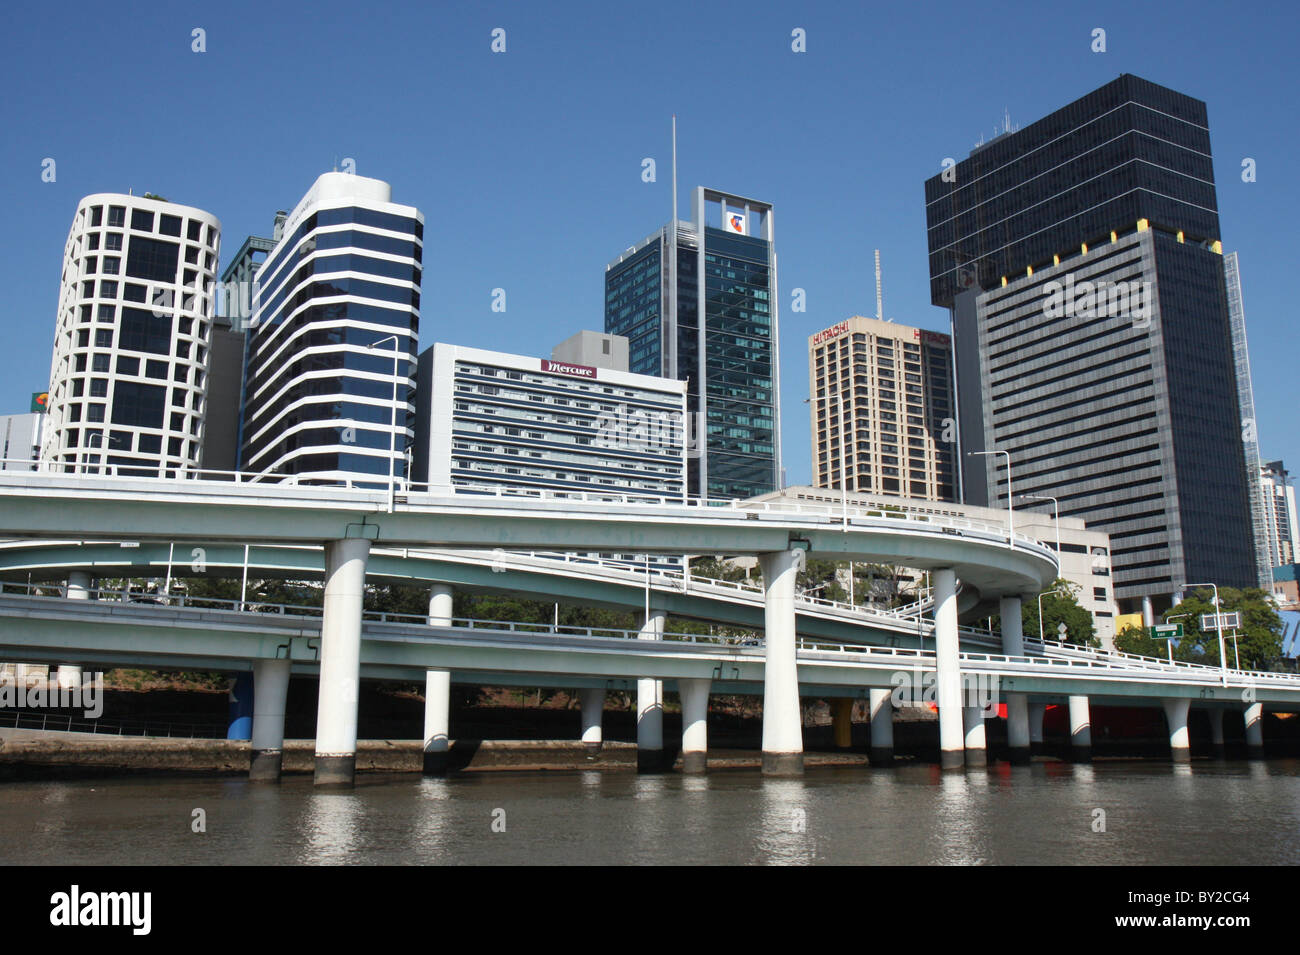 Brisbane CBD (City Centre) and elevated road taken from the river in Queensland, Australia - Stock Image